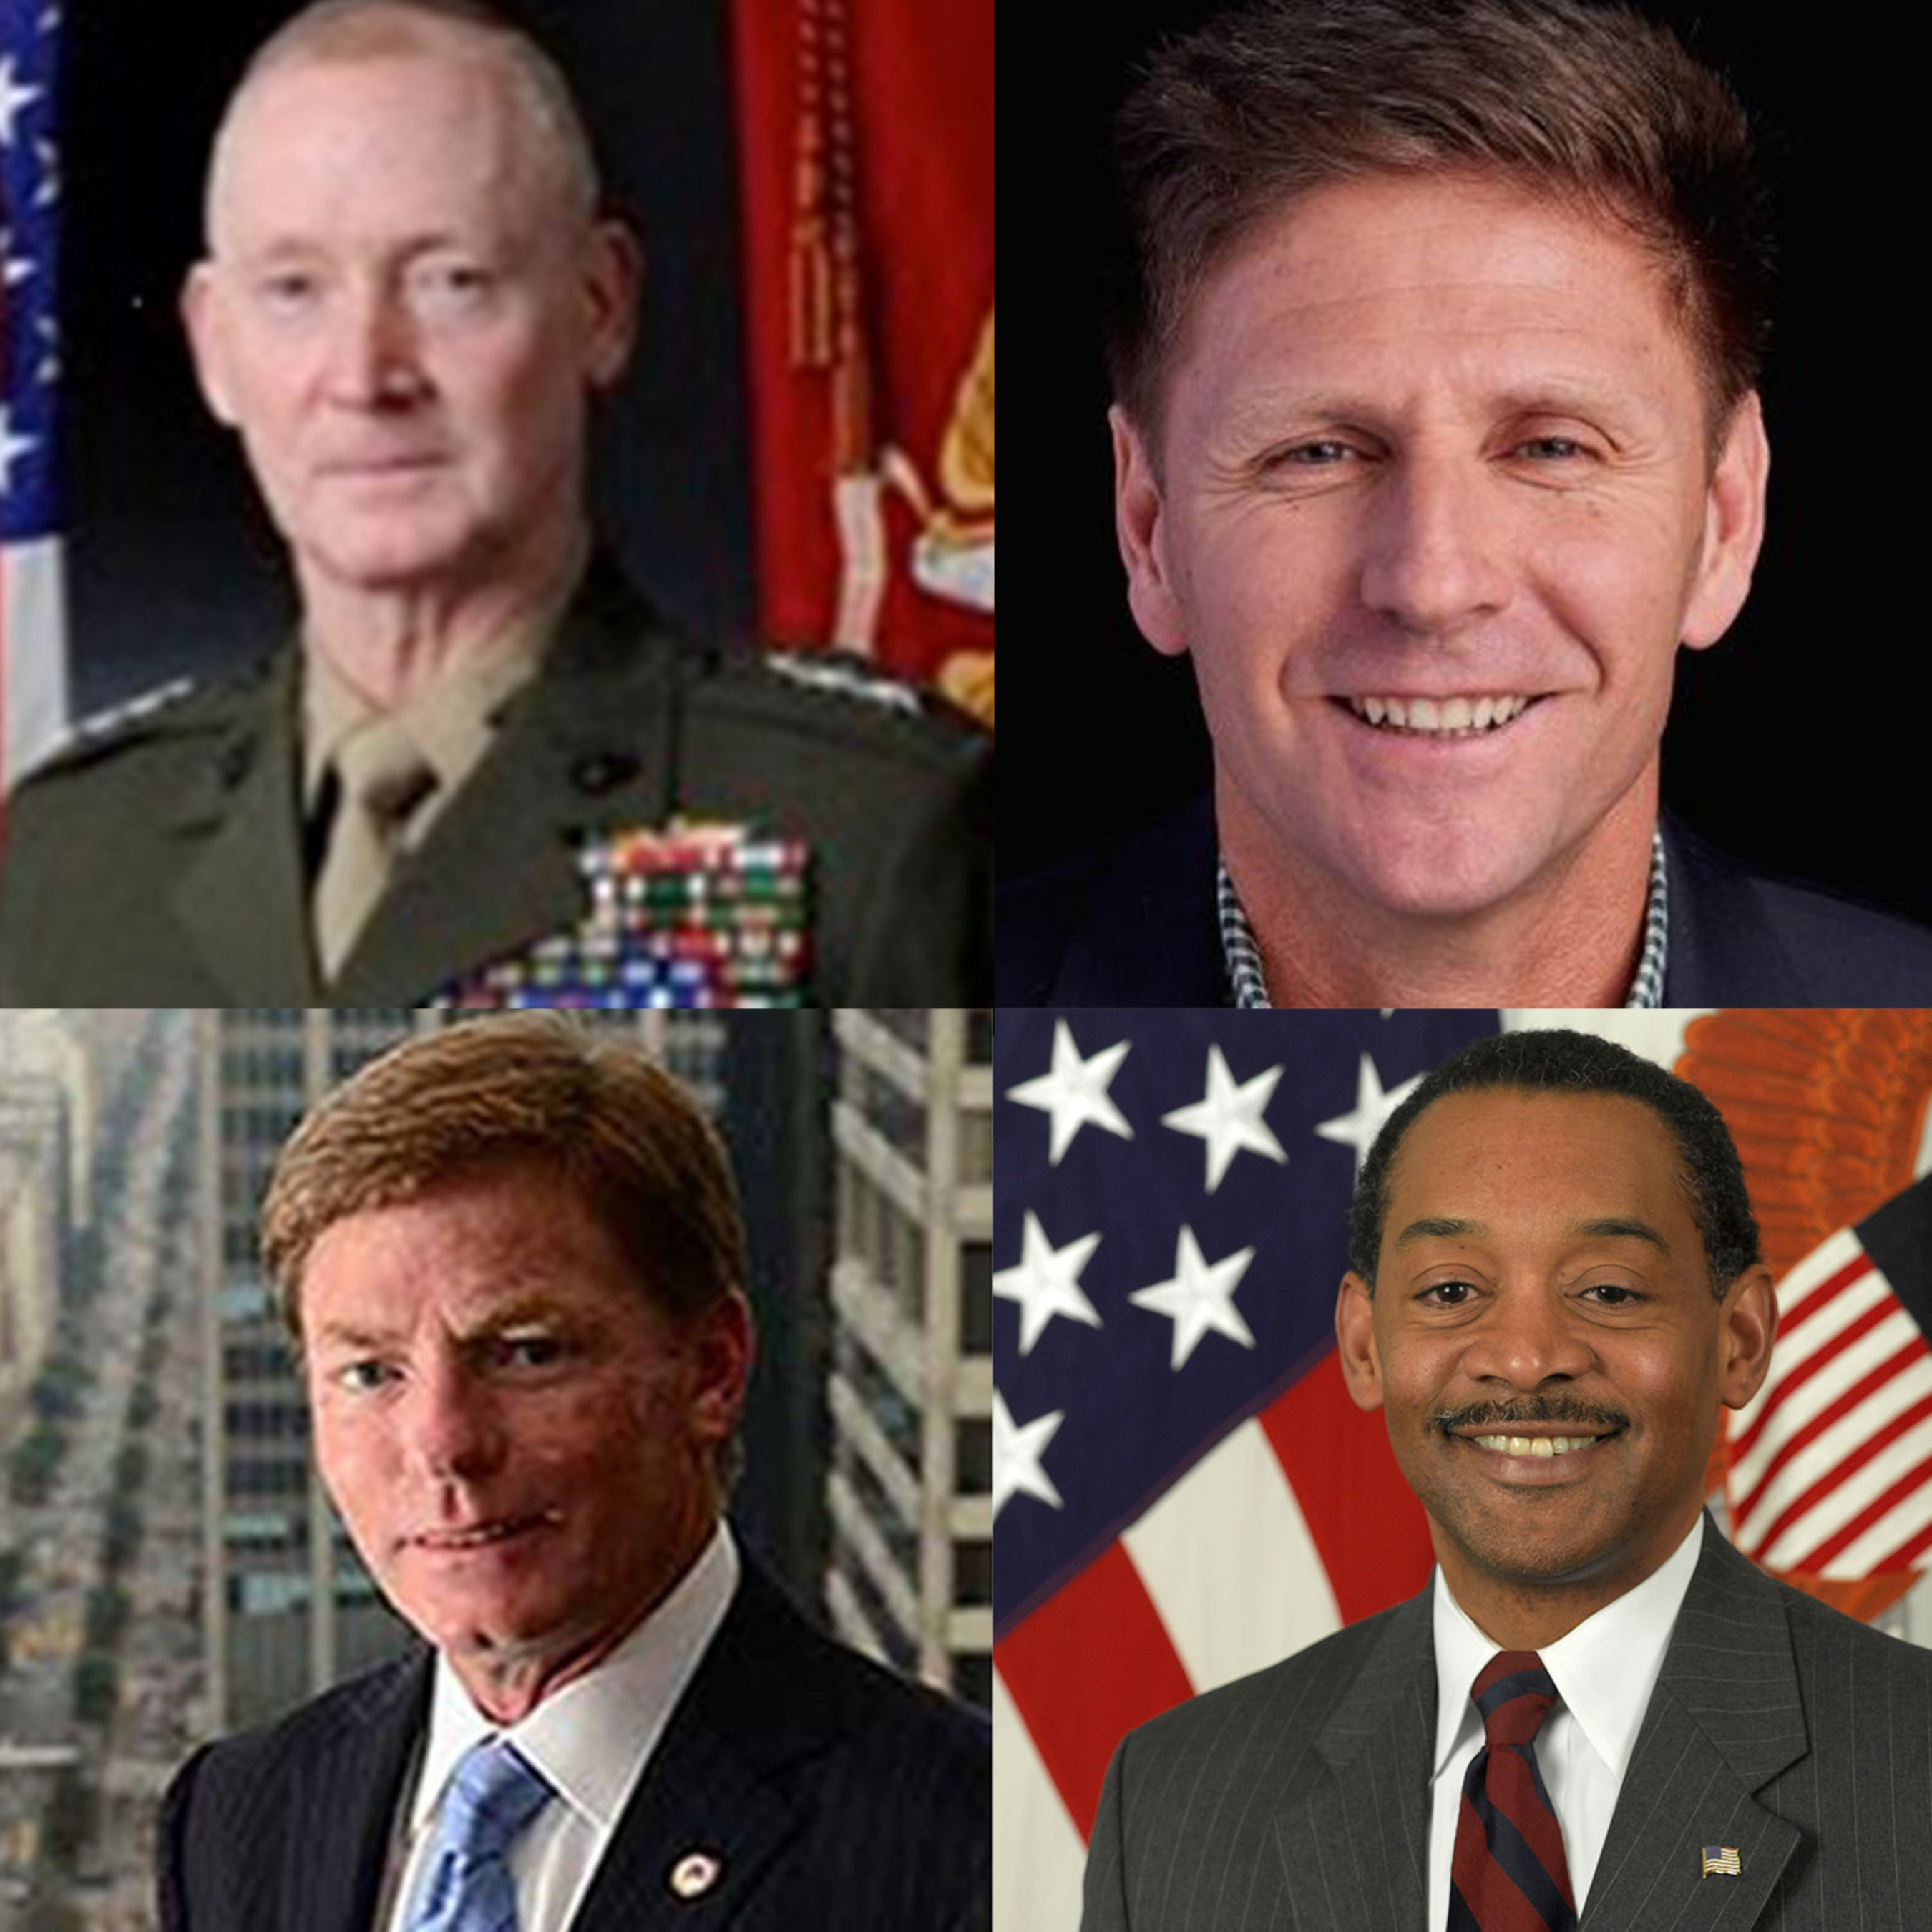 Wounded Warrior Project welcomes four new members to its board of directors. Lt. Gen. (RET) Richard Tryon (top left), the Honorable Juan Garcia (top right), Mr. Ken Fisher (bottom left), and Dr. Jonathan Woodson (bottom right).